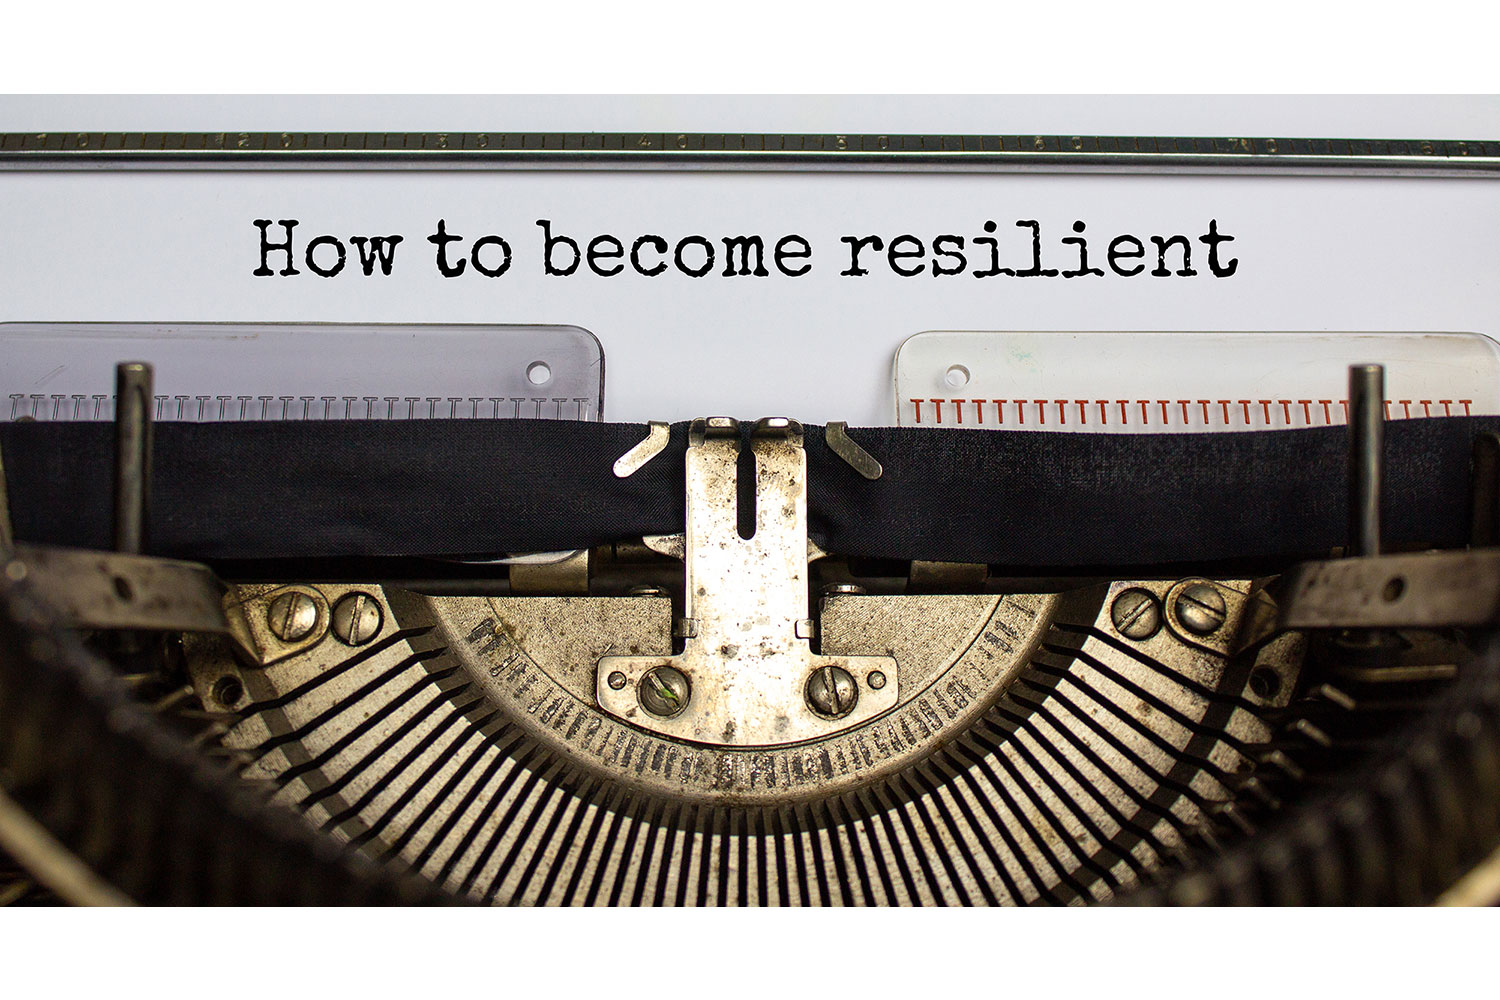 How resilience helps leaders navigate development crises, from local communities to global governance